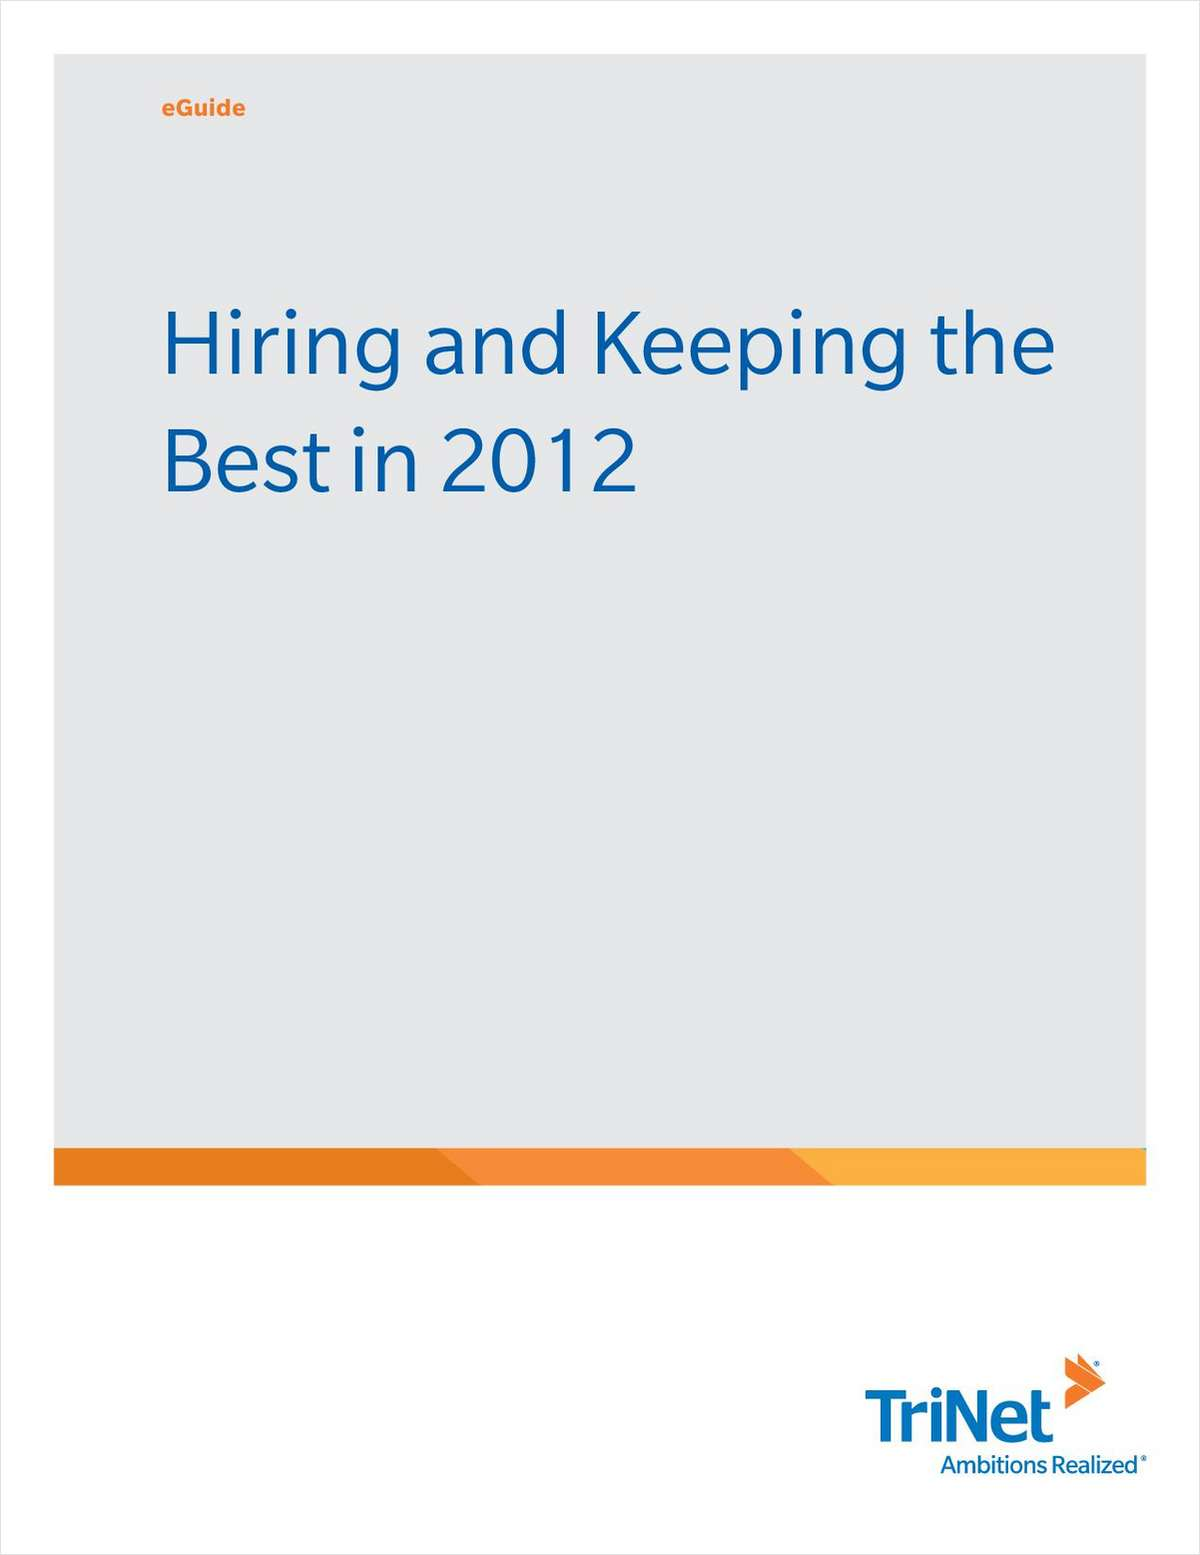 Hiring and Keeping the Best in 2012